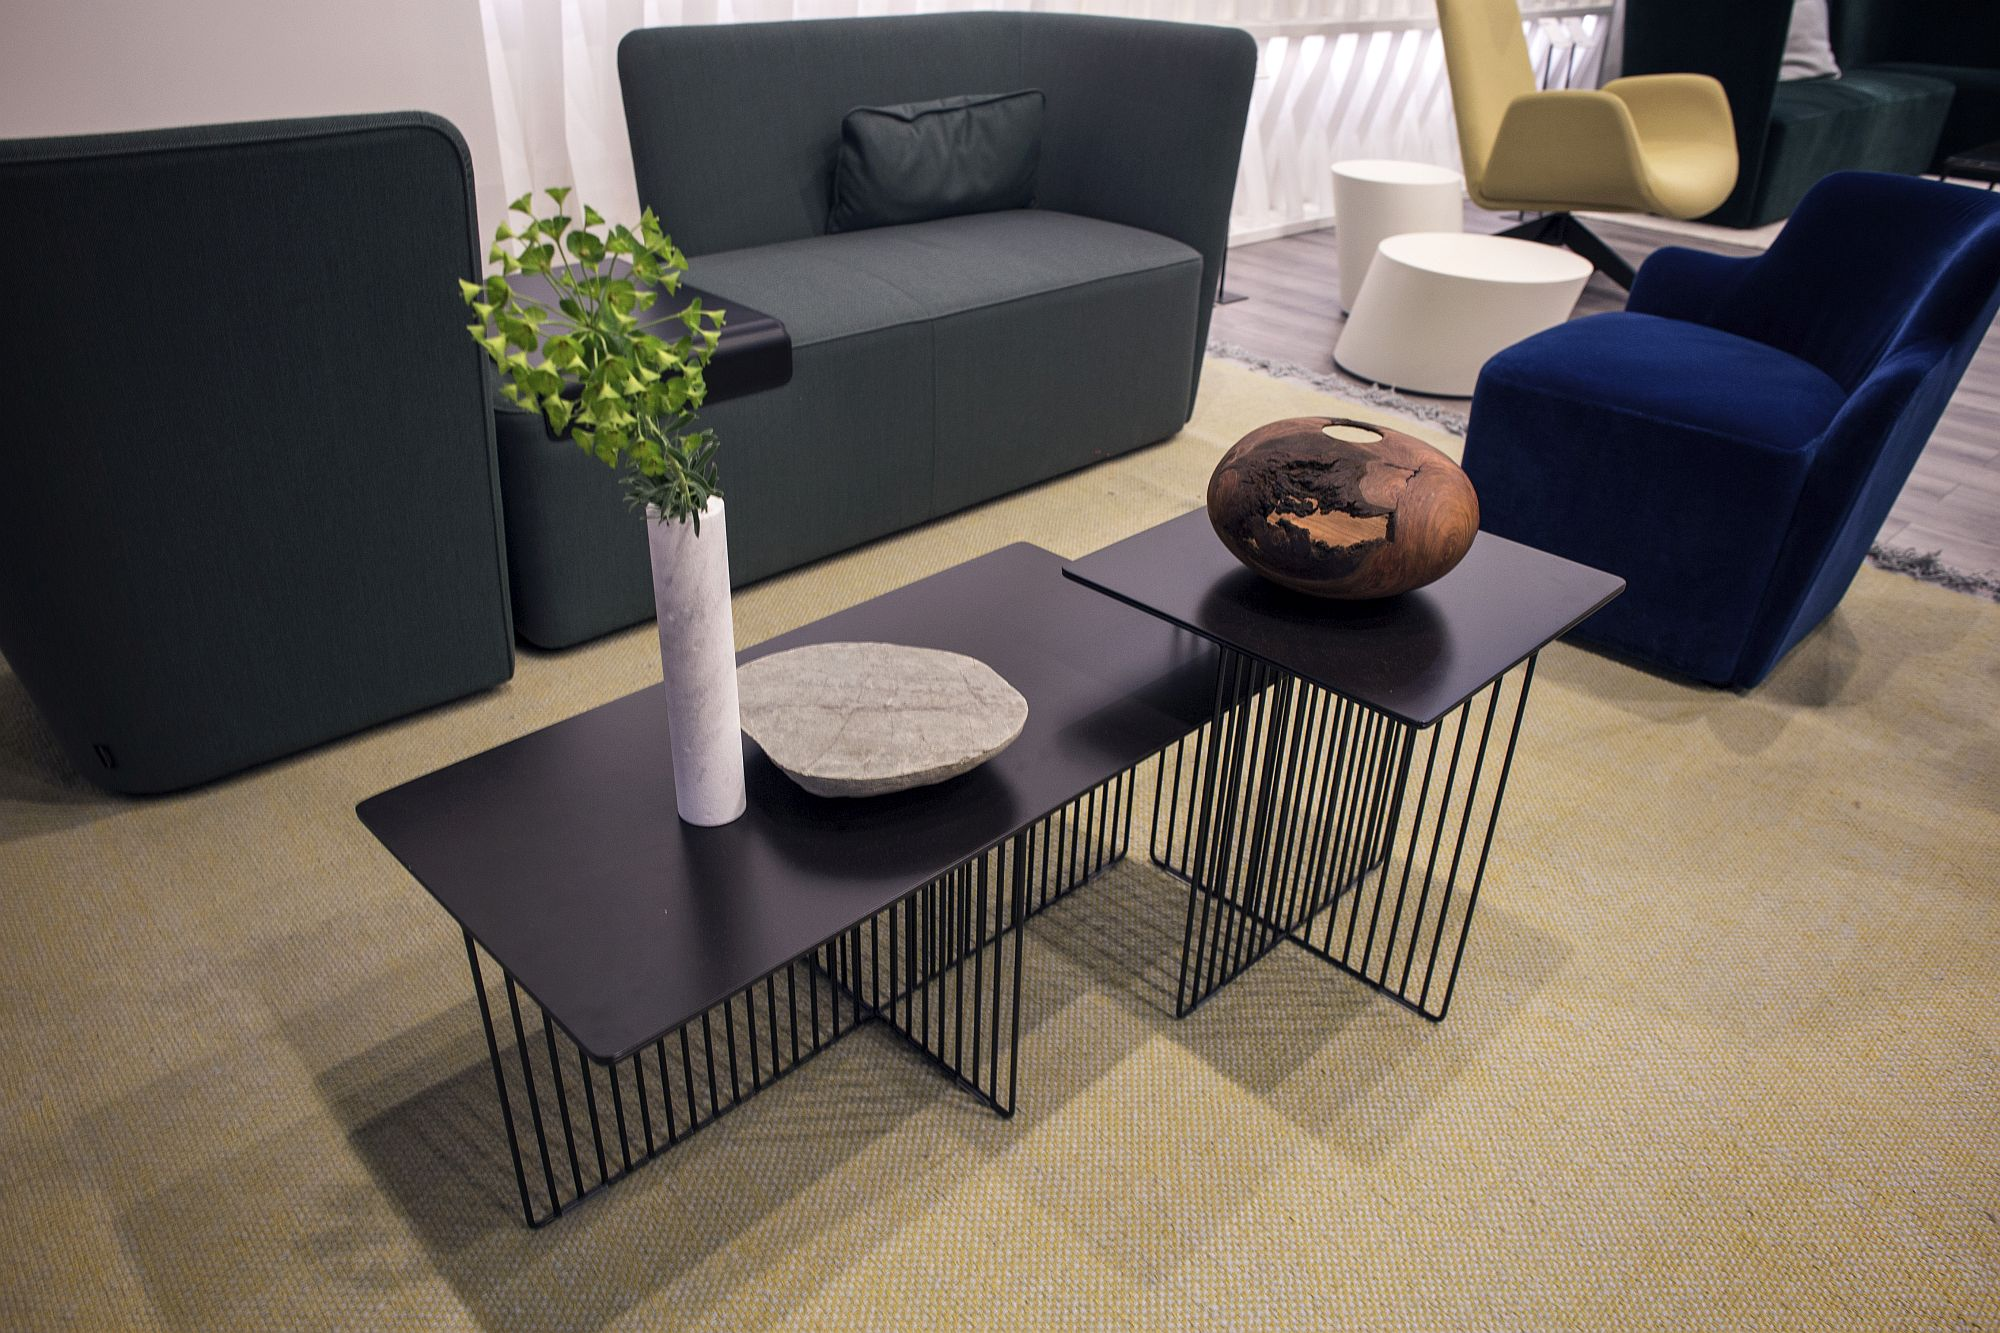 Geo style base of the coffee tables steals the show here